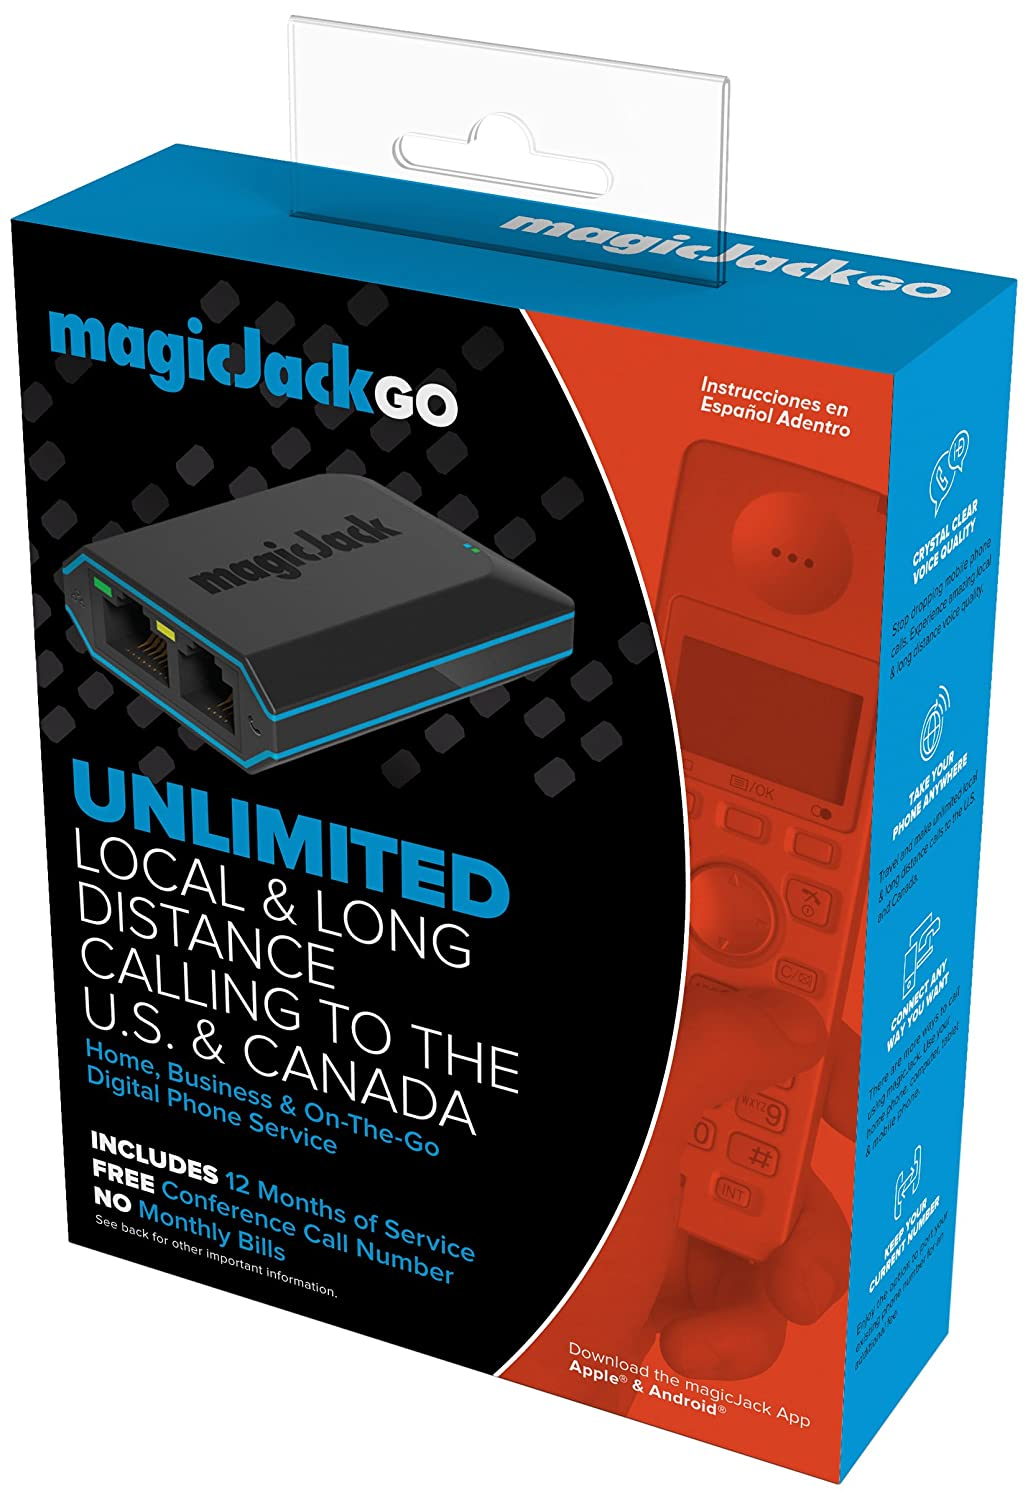 Magicjack Go 2014 Version Digital Phone Service